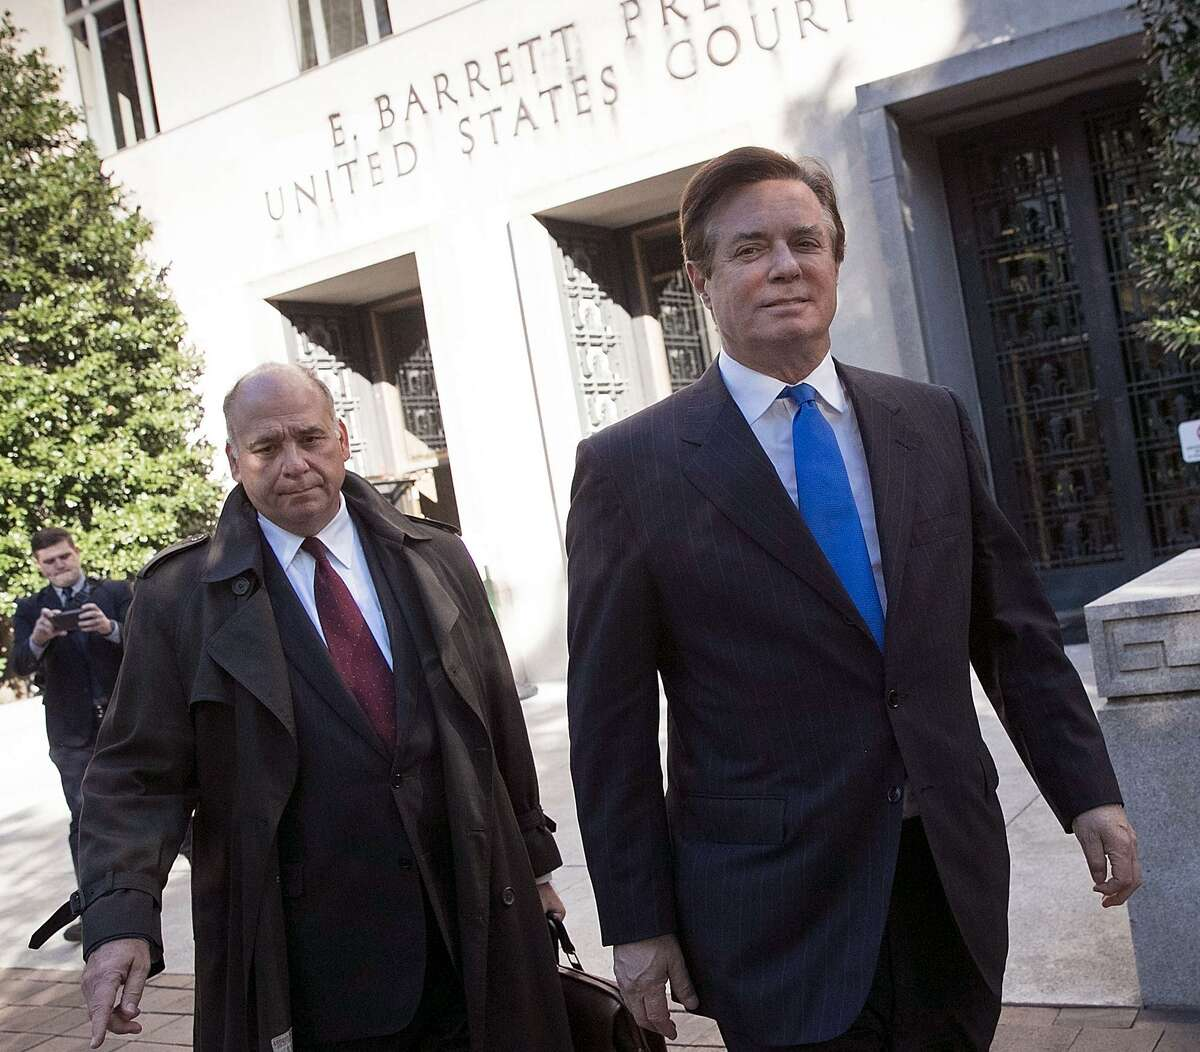 Former campaign manager for U.S. President Donald Trump, Paul Manafort (R), leaves U.S. District Court after pleading not guilty following his indictment on federal charges on October 30, 2017 in Washington, D.C. Manafort was indicted on charges of funneling millions of dollars through overseas shell companies.